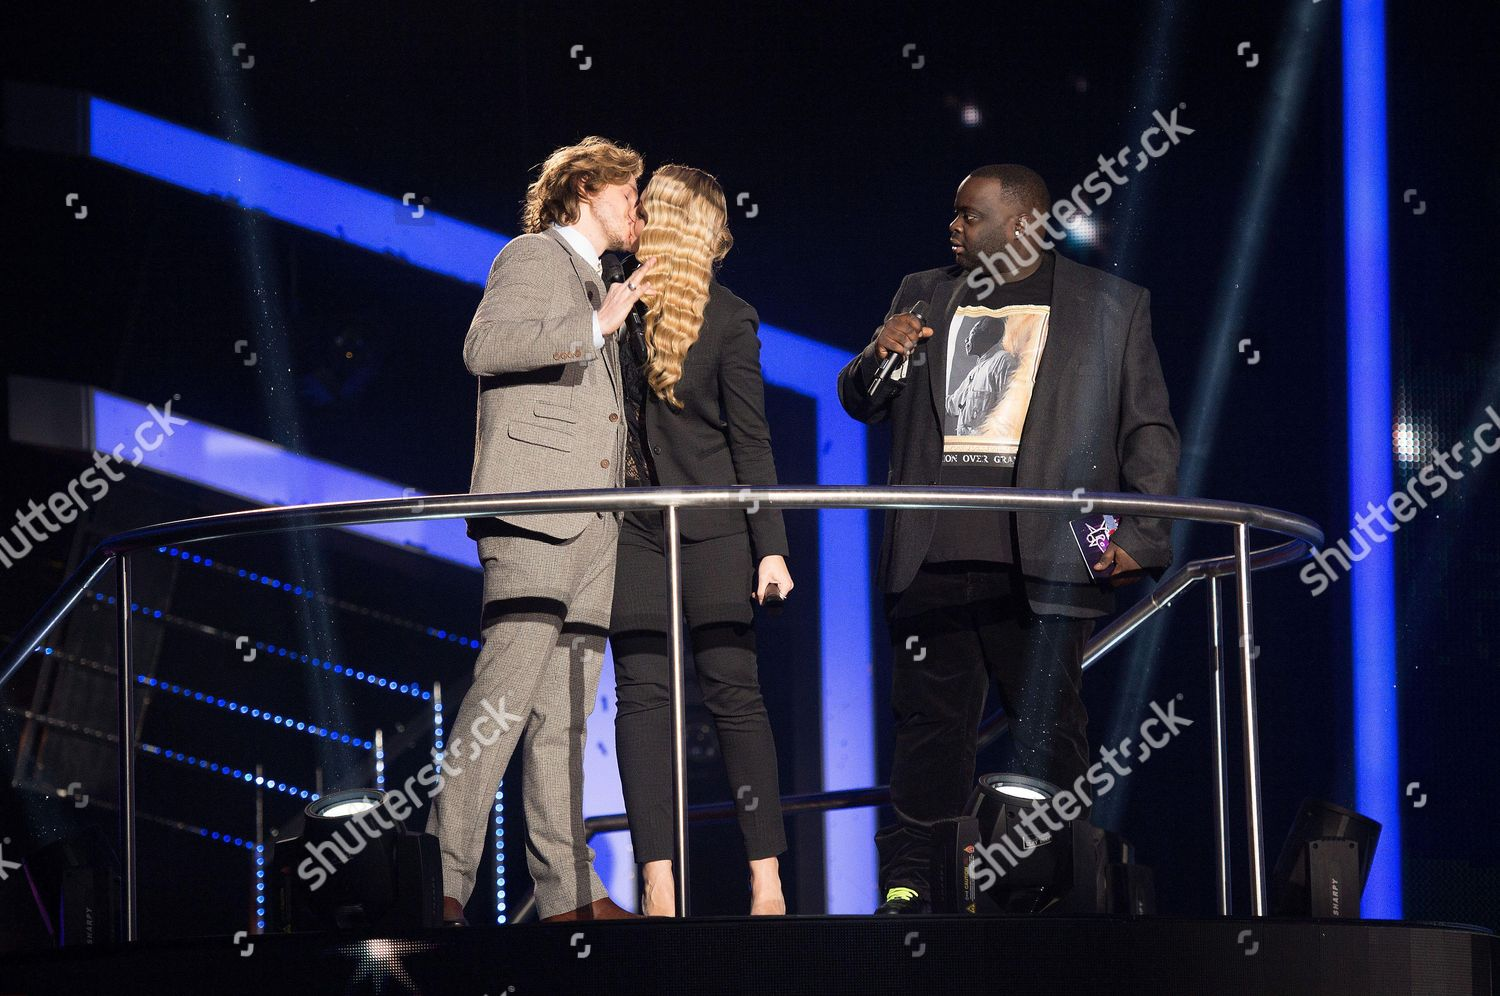 Stock photo of NRJ Music Awards, Cannes, France - 14 Dec 2013